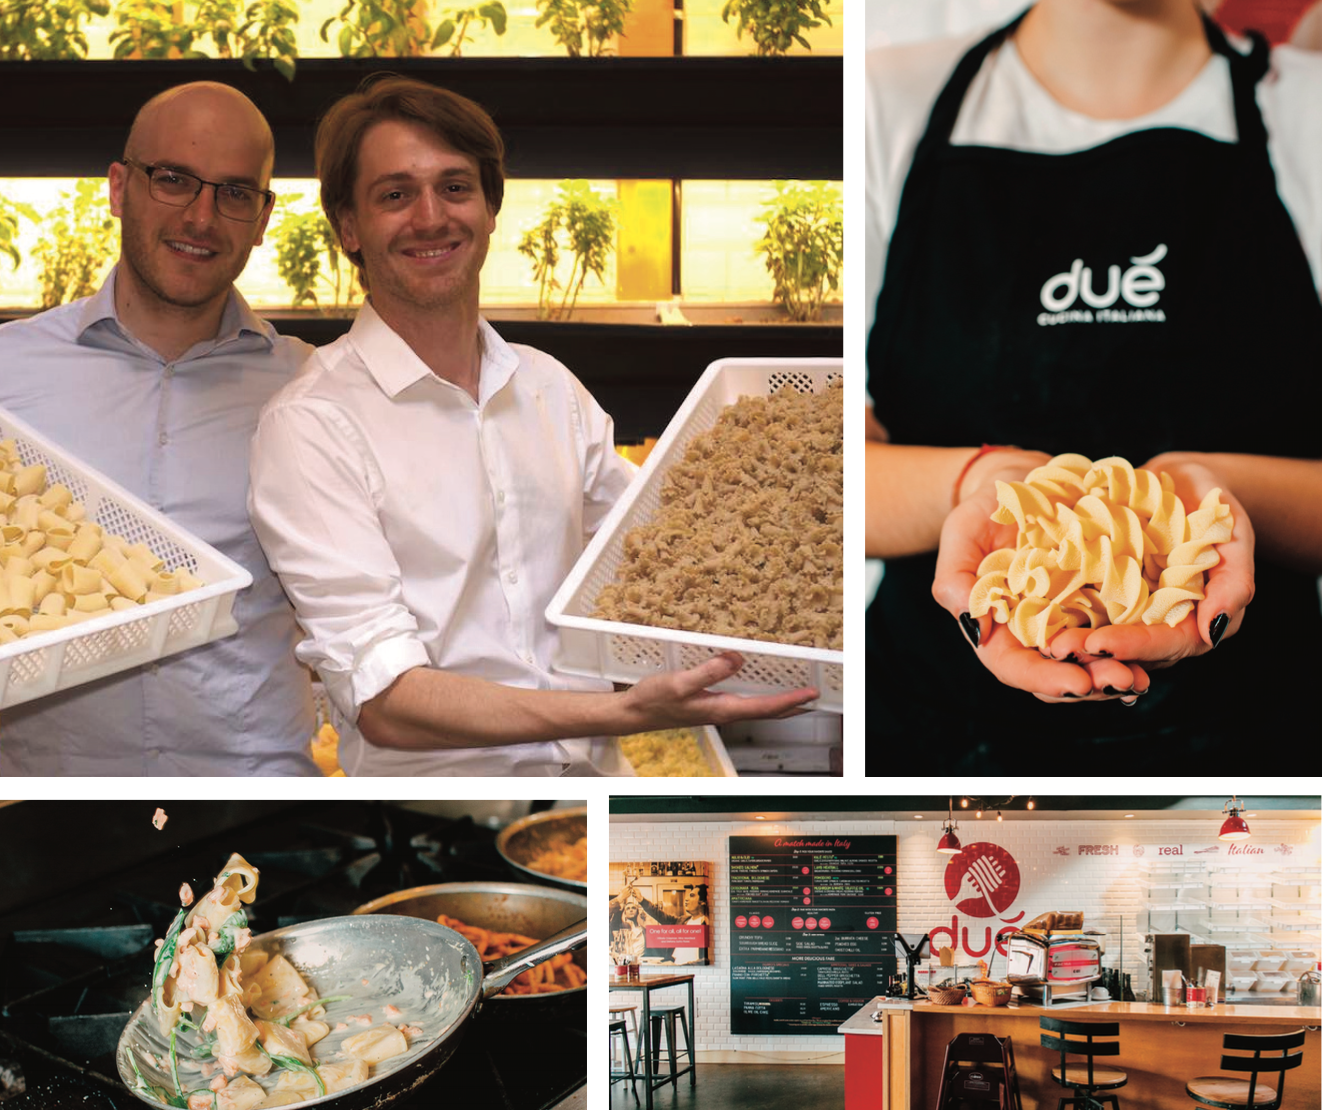 Science, art and friendship merge in Dué Cucina Italiana